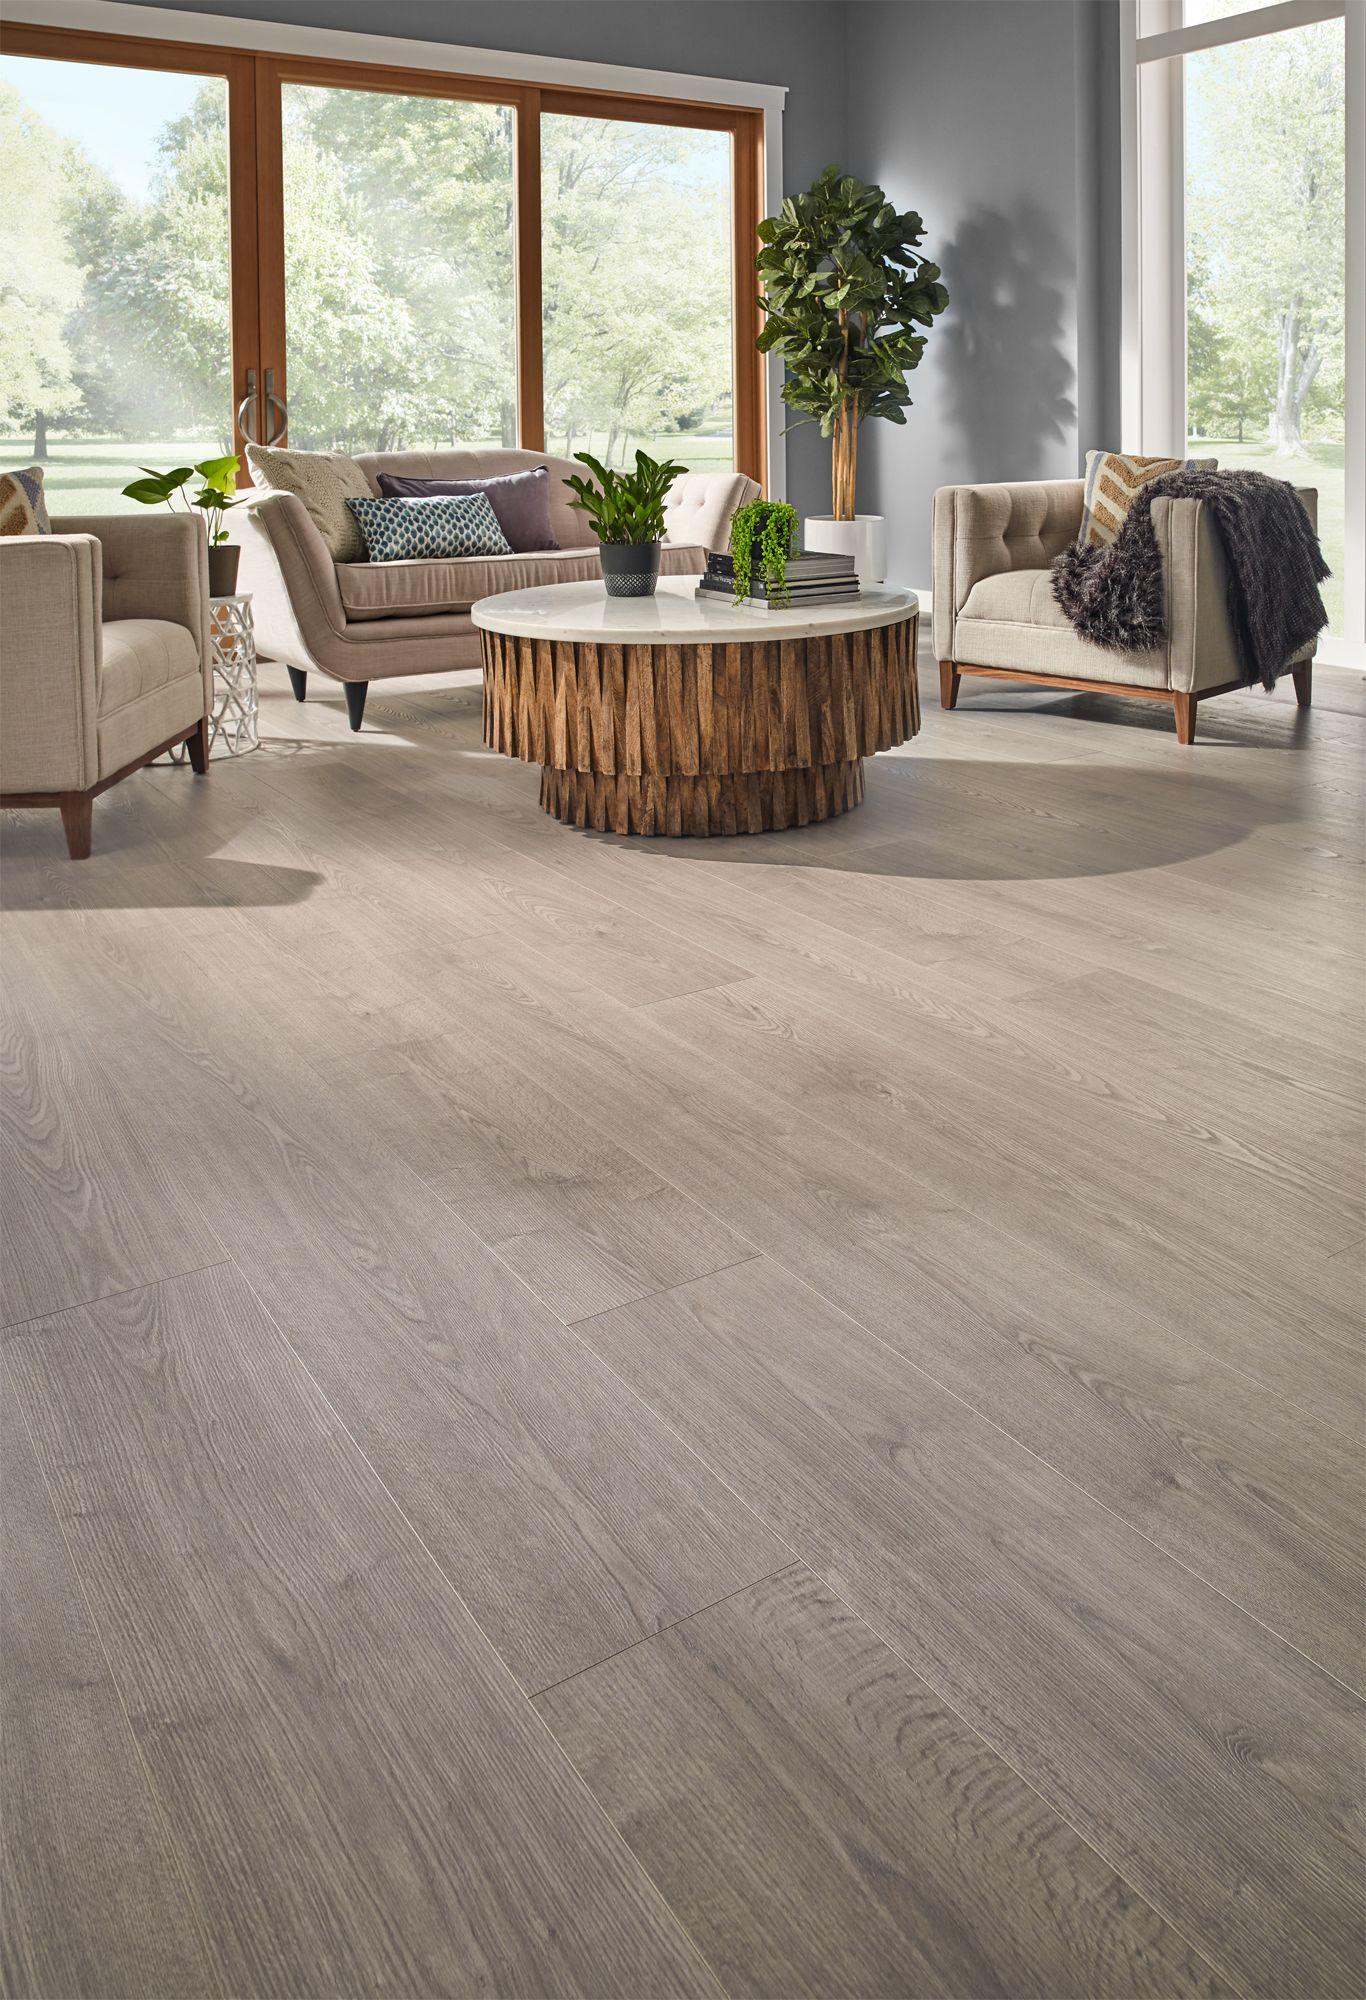 Vintage pewter oak pergo outlast laminate flooring pergo 174 flooring - Highly Water Resistant Misty Morning Oak Is The Perfect Laminate Floor For Those Who Want